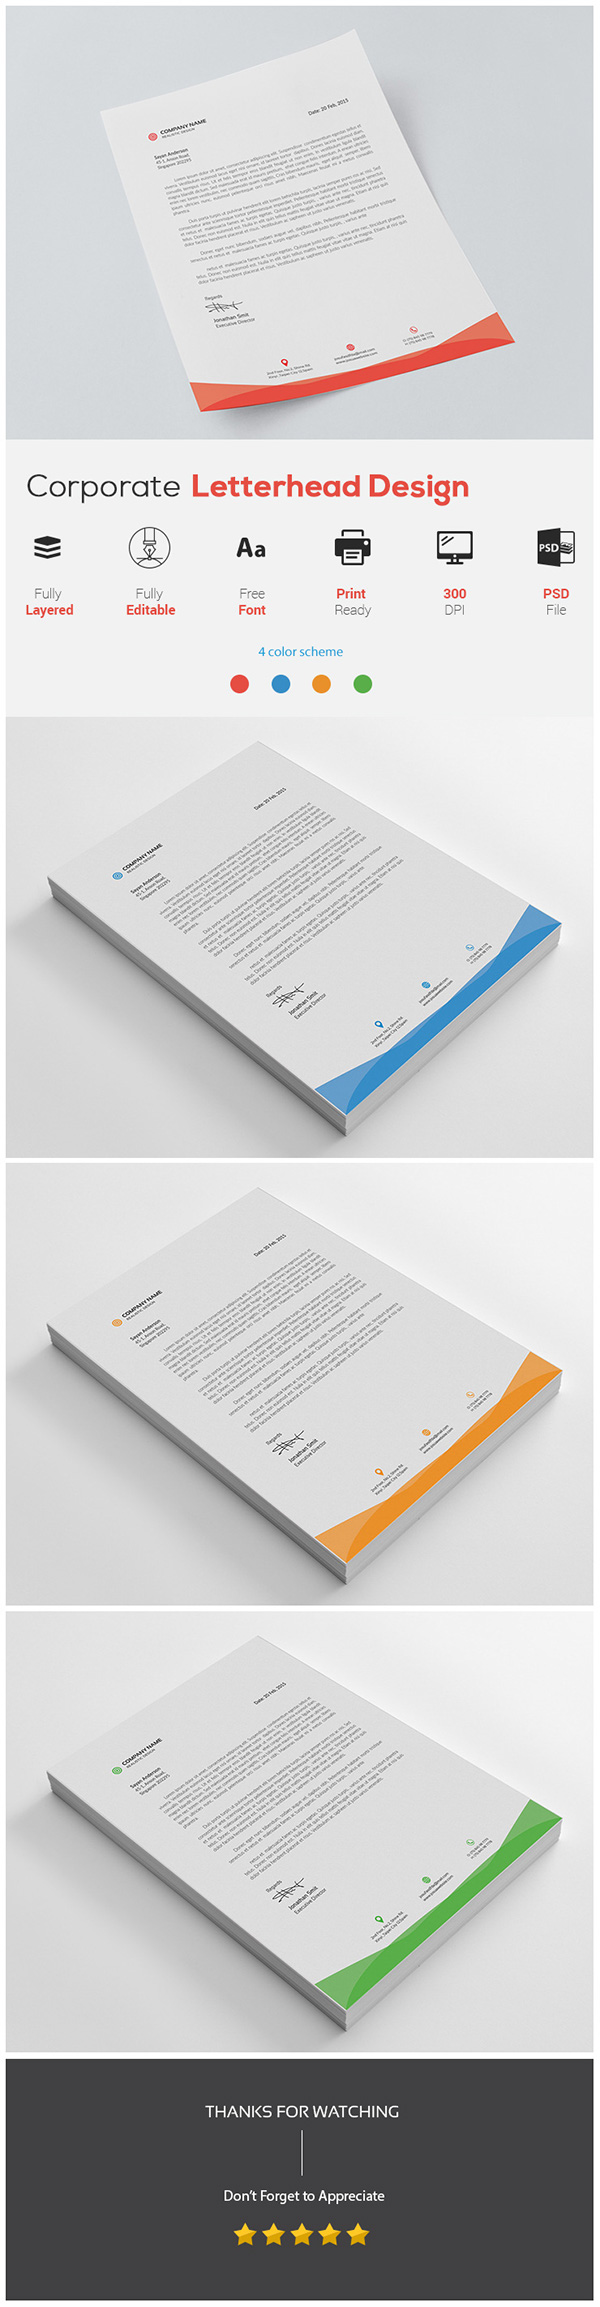 Corporate Letterhead Template On Student Show